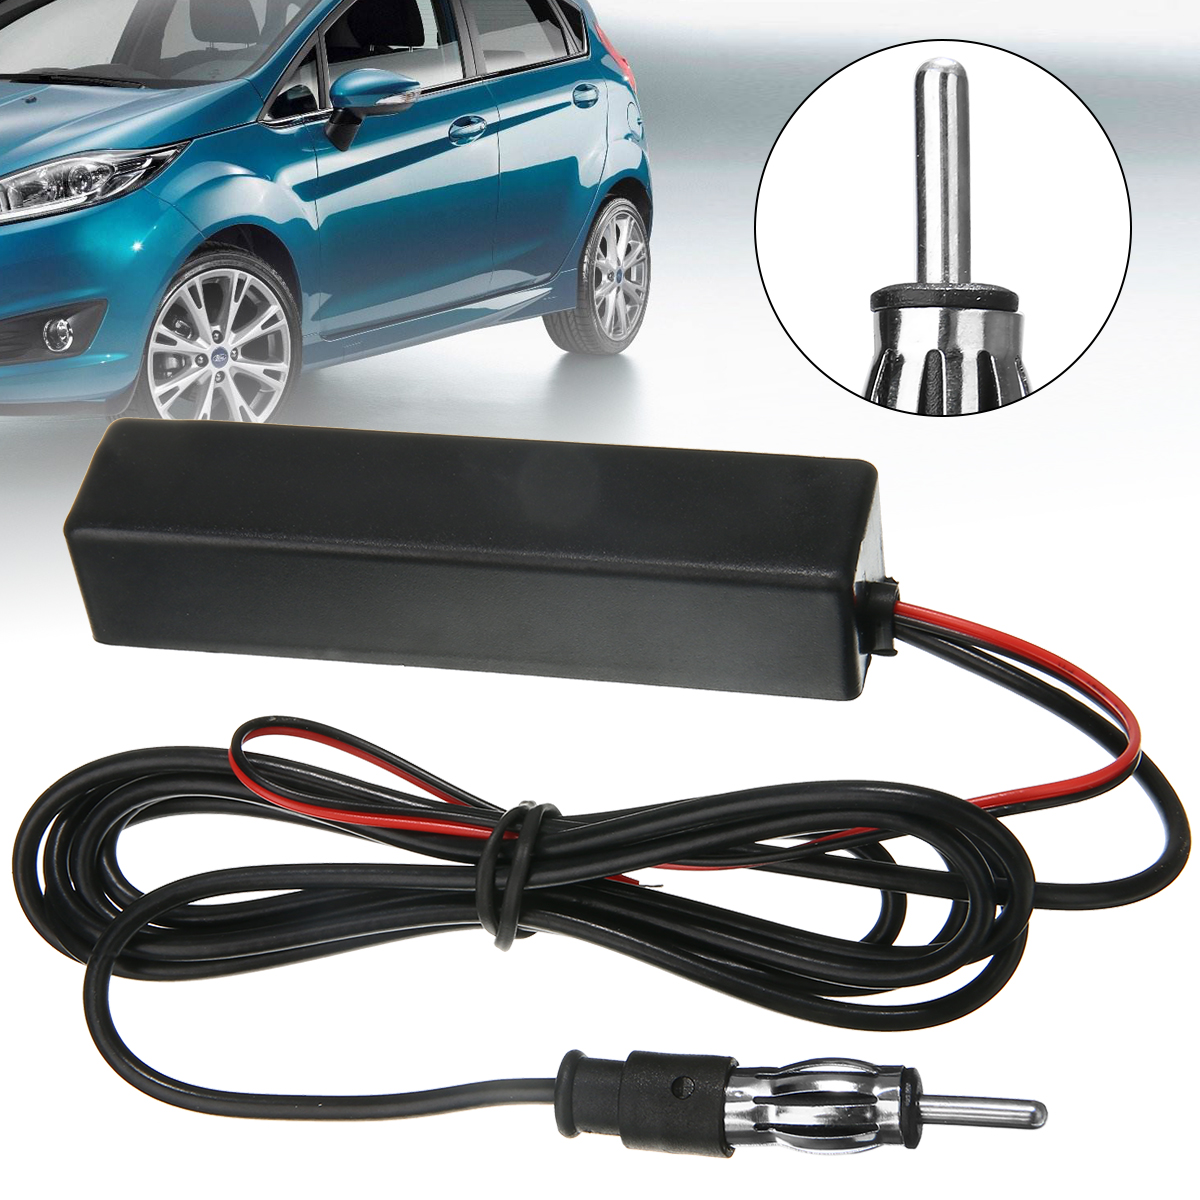 1pcs 15m Car Aerial Electronic Stereo AM FM Radio Hidden Amplified Antenna Aerial 12V Universal in Aerials from Automobiles Motorcycles